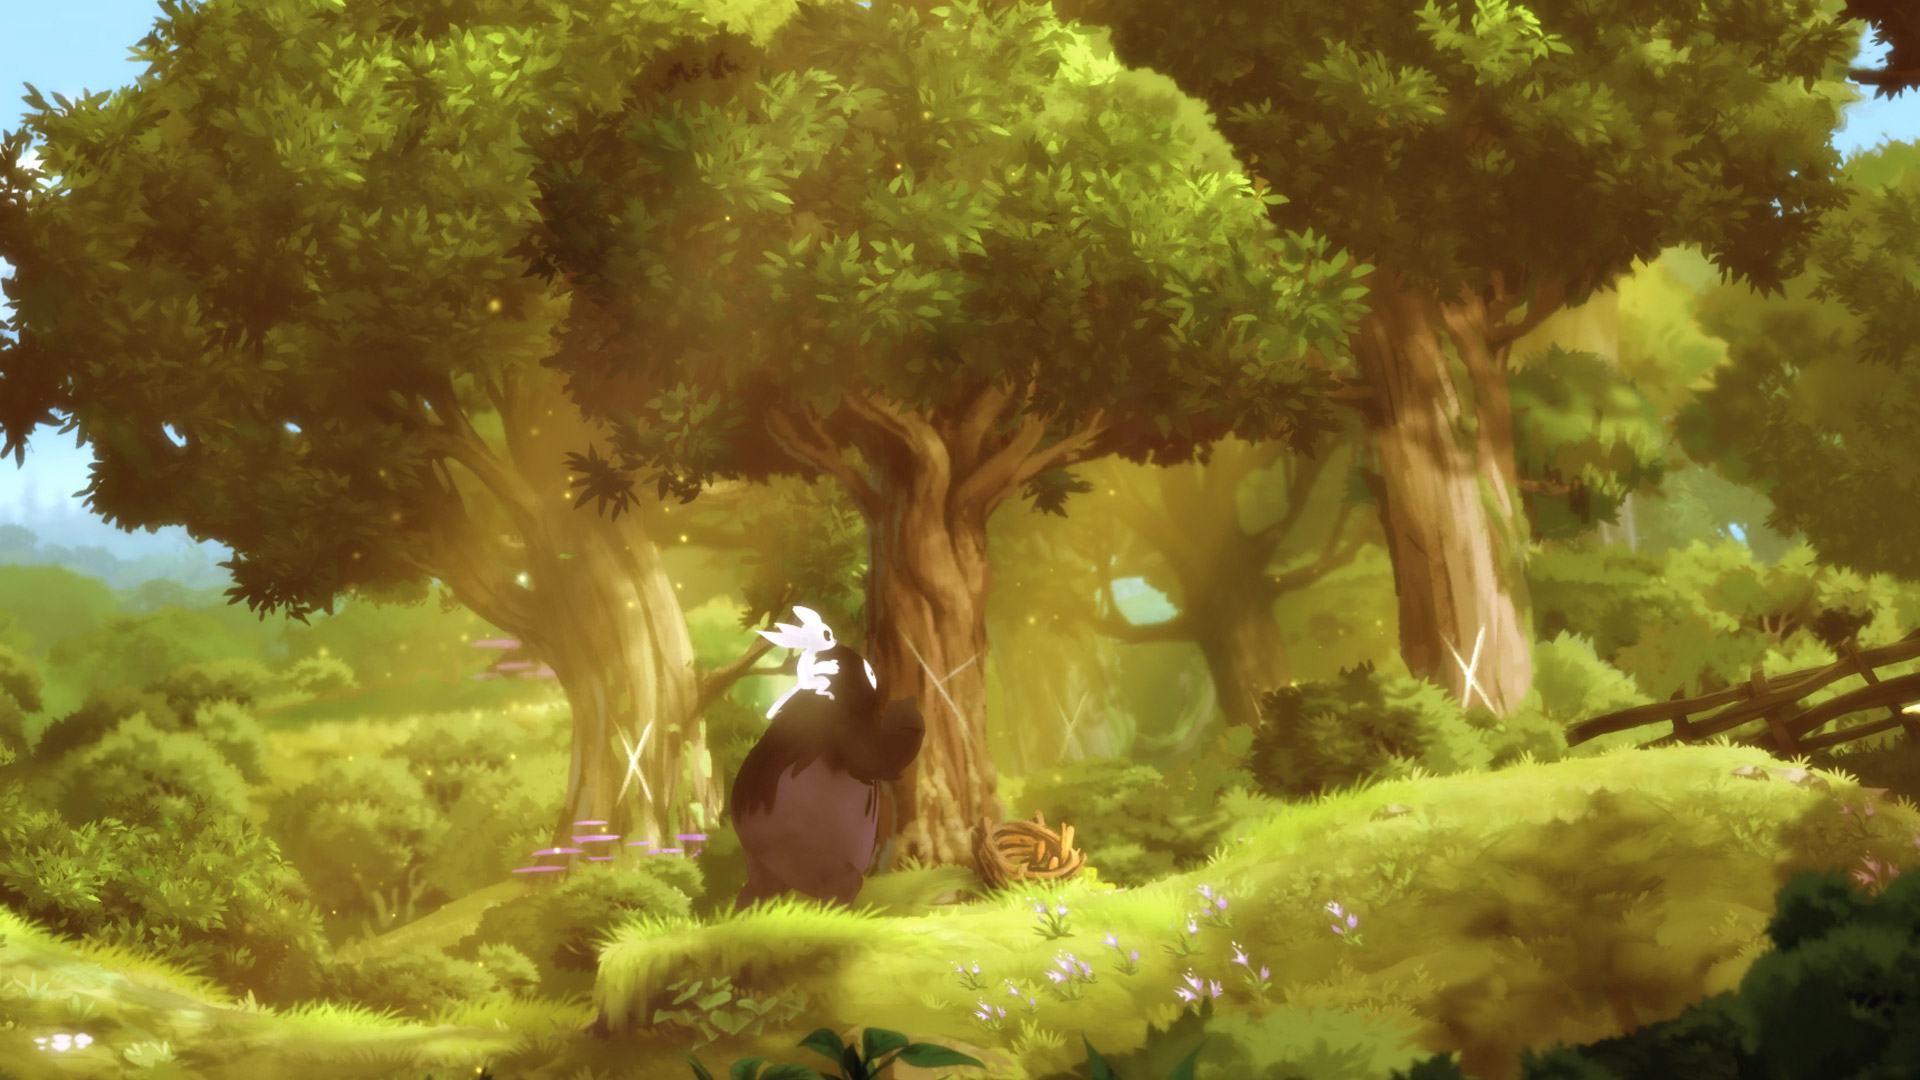 Ori and the Blind Forest has the most powerful opening to any game